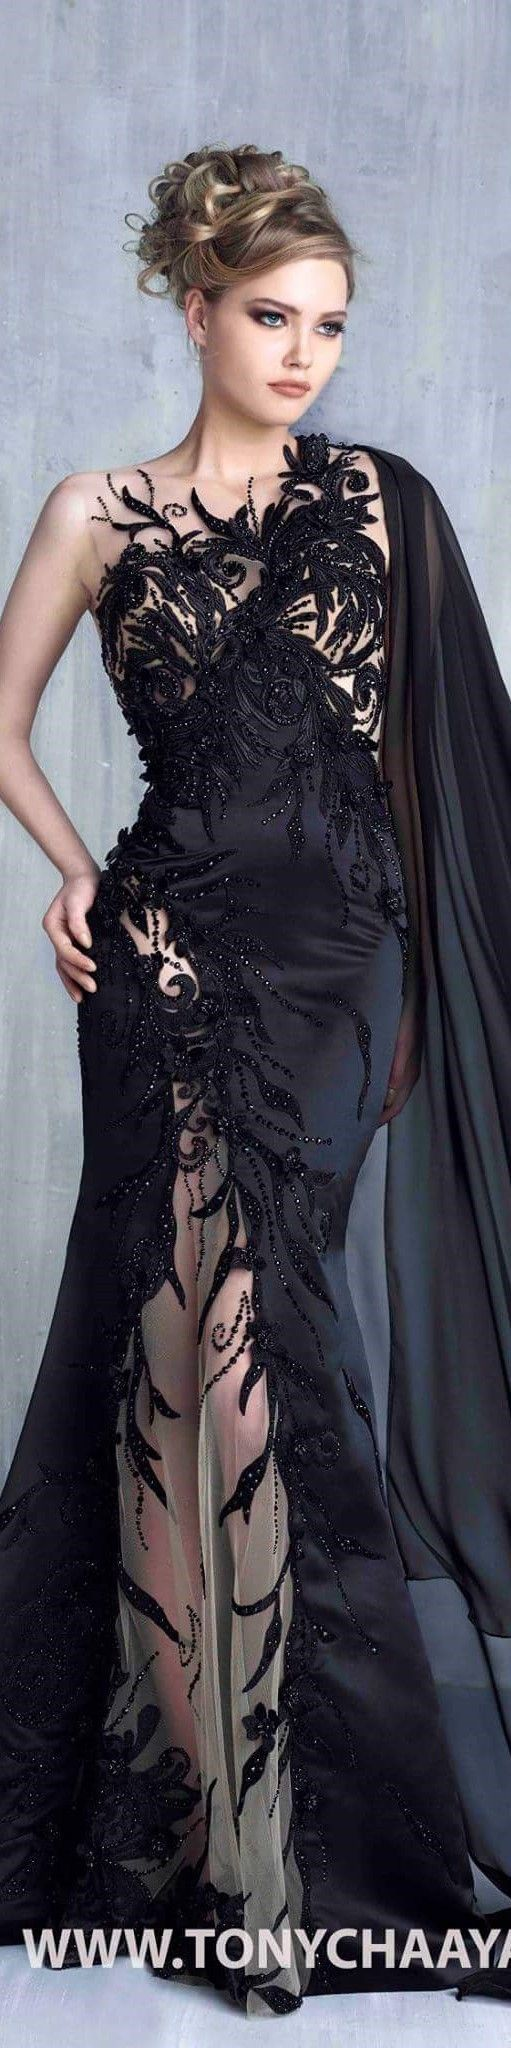 Tony chaaya couture sxy gown pinterest couture gowns